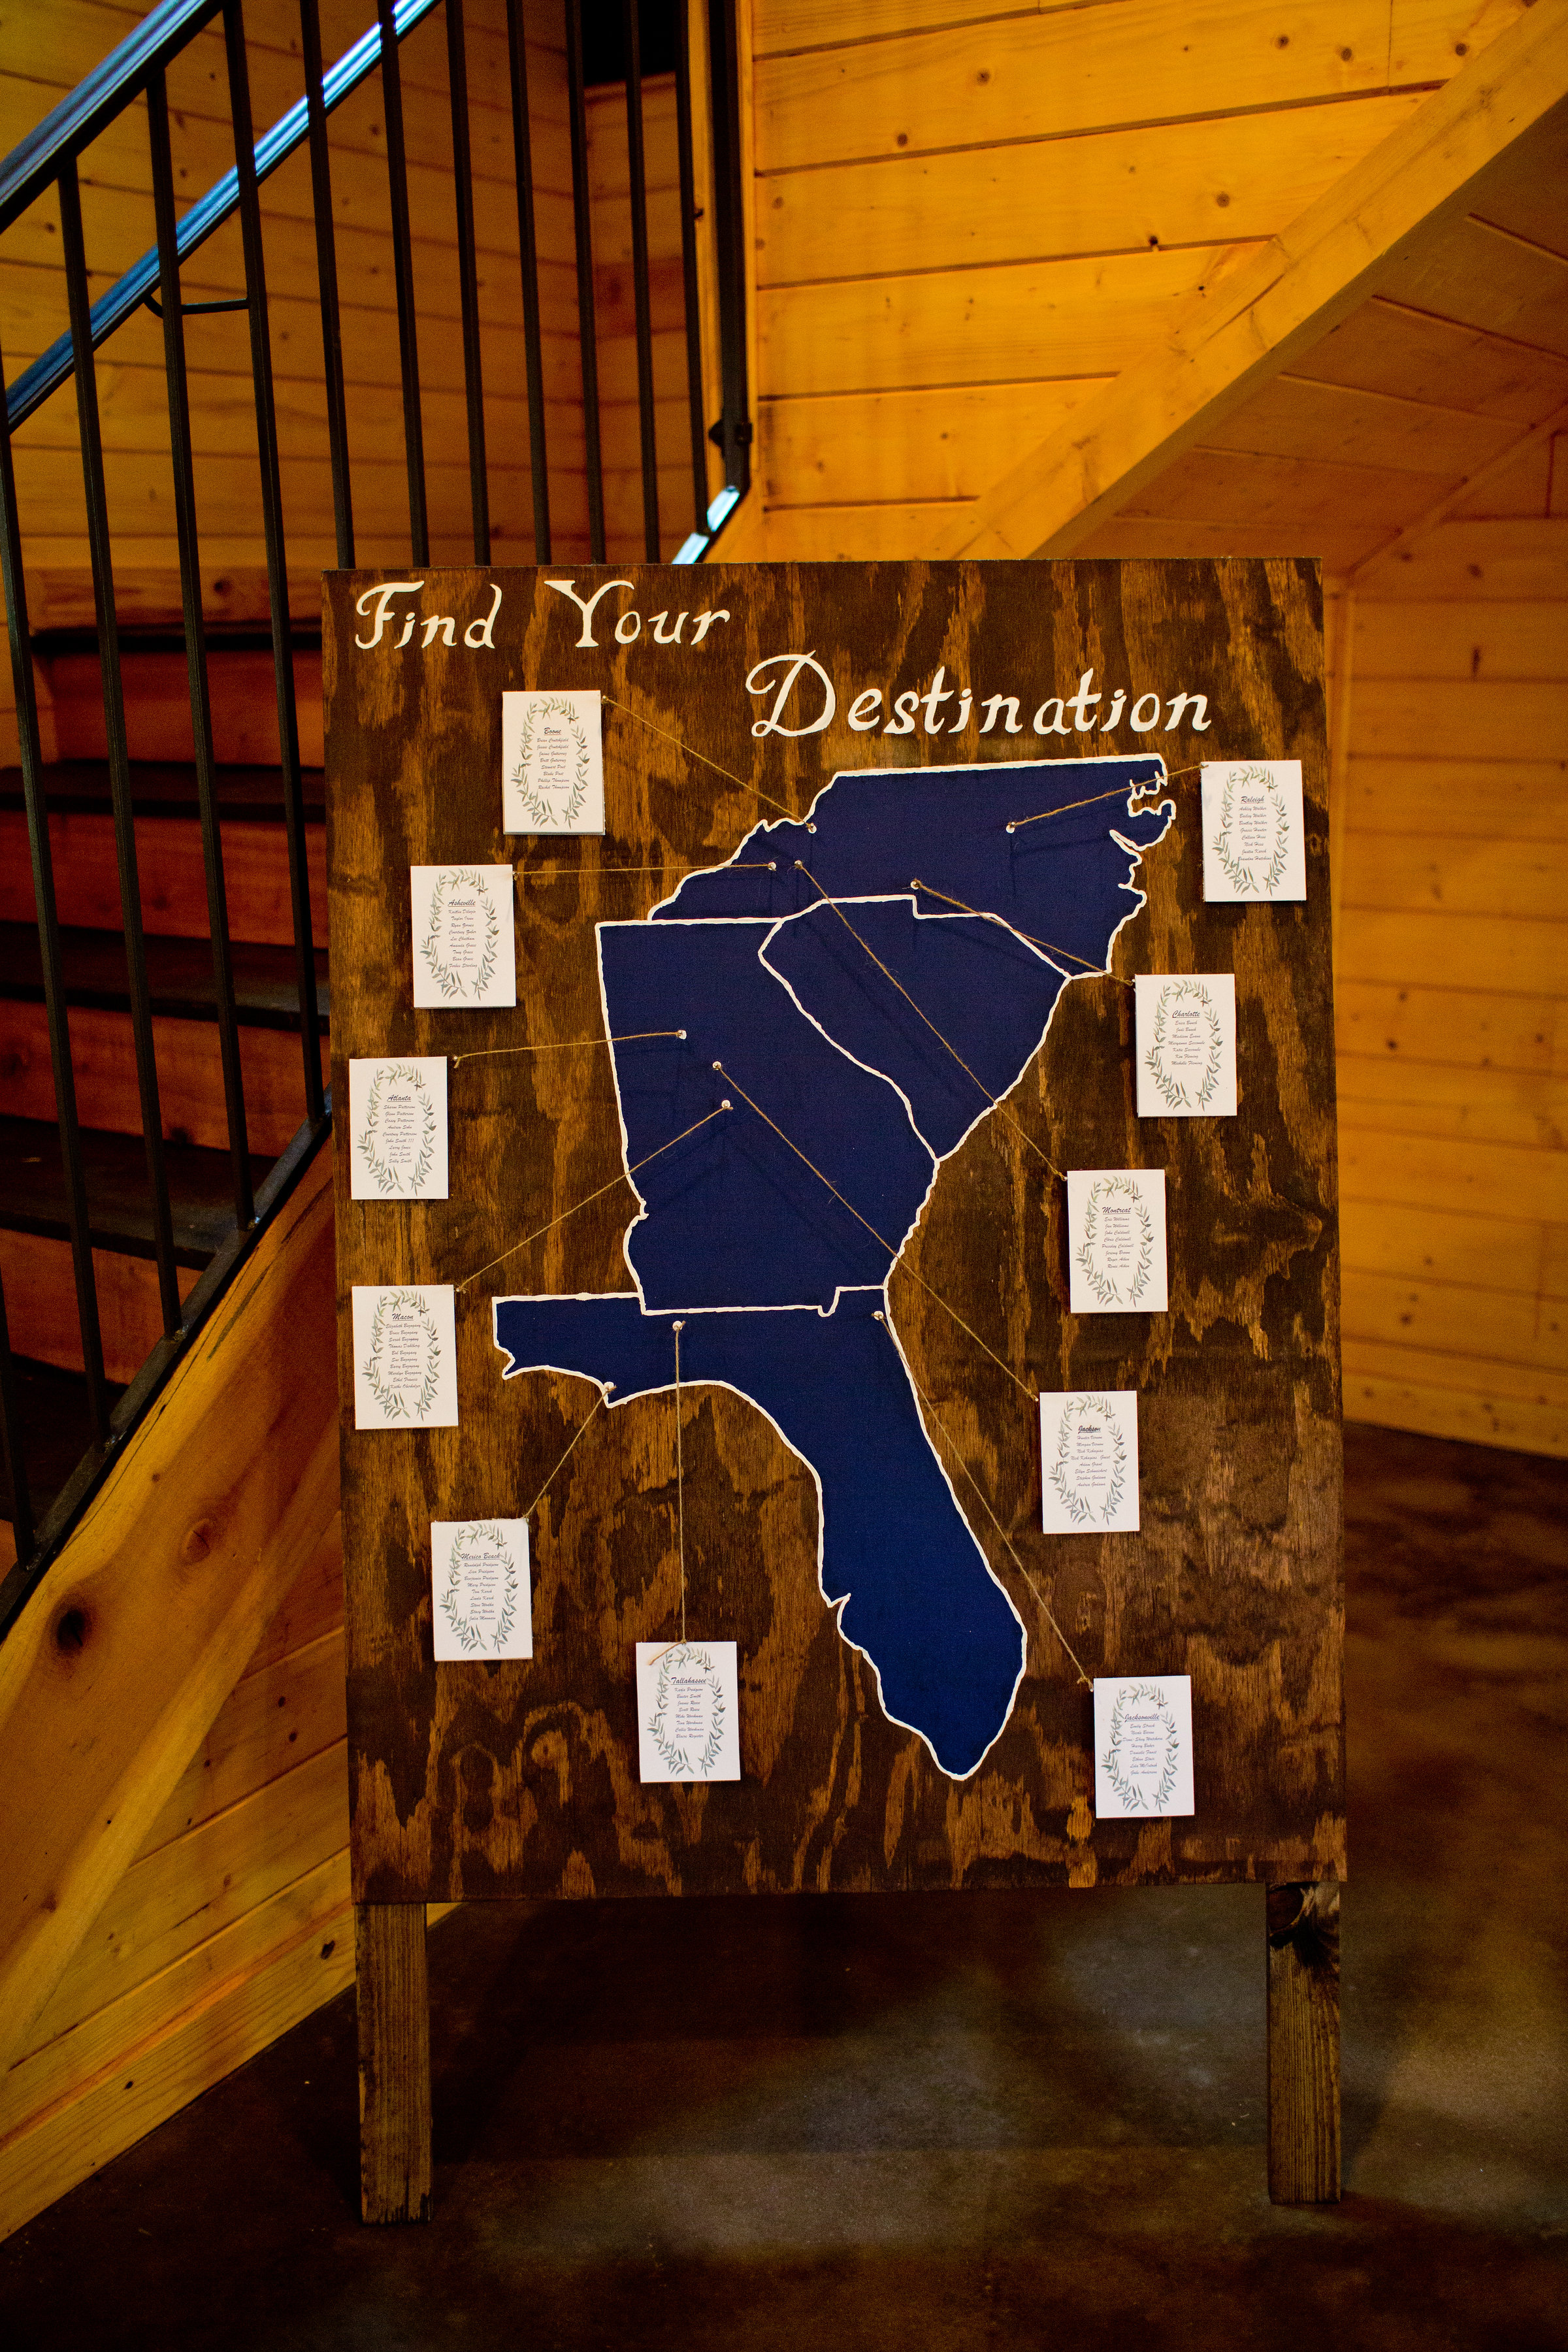 Creative, handmade seating chart highlighting all the places they lived! pc: Taken by Tate